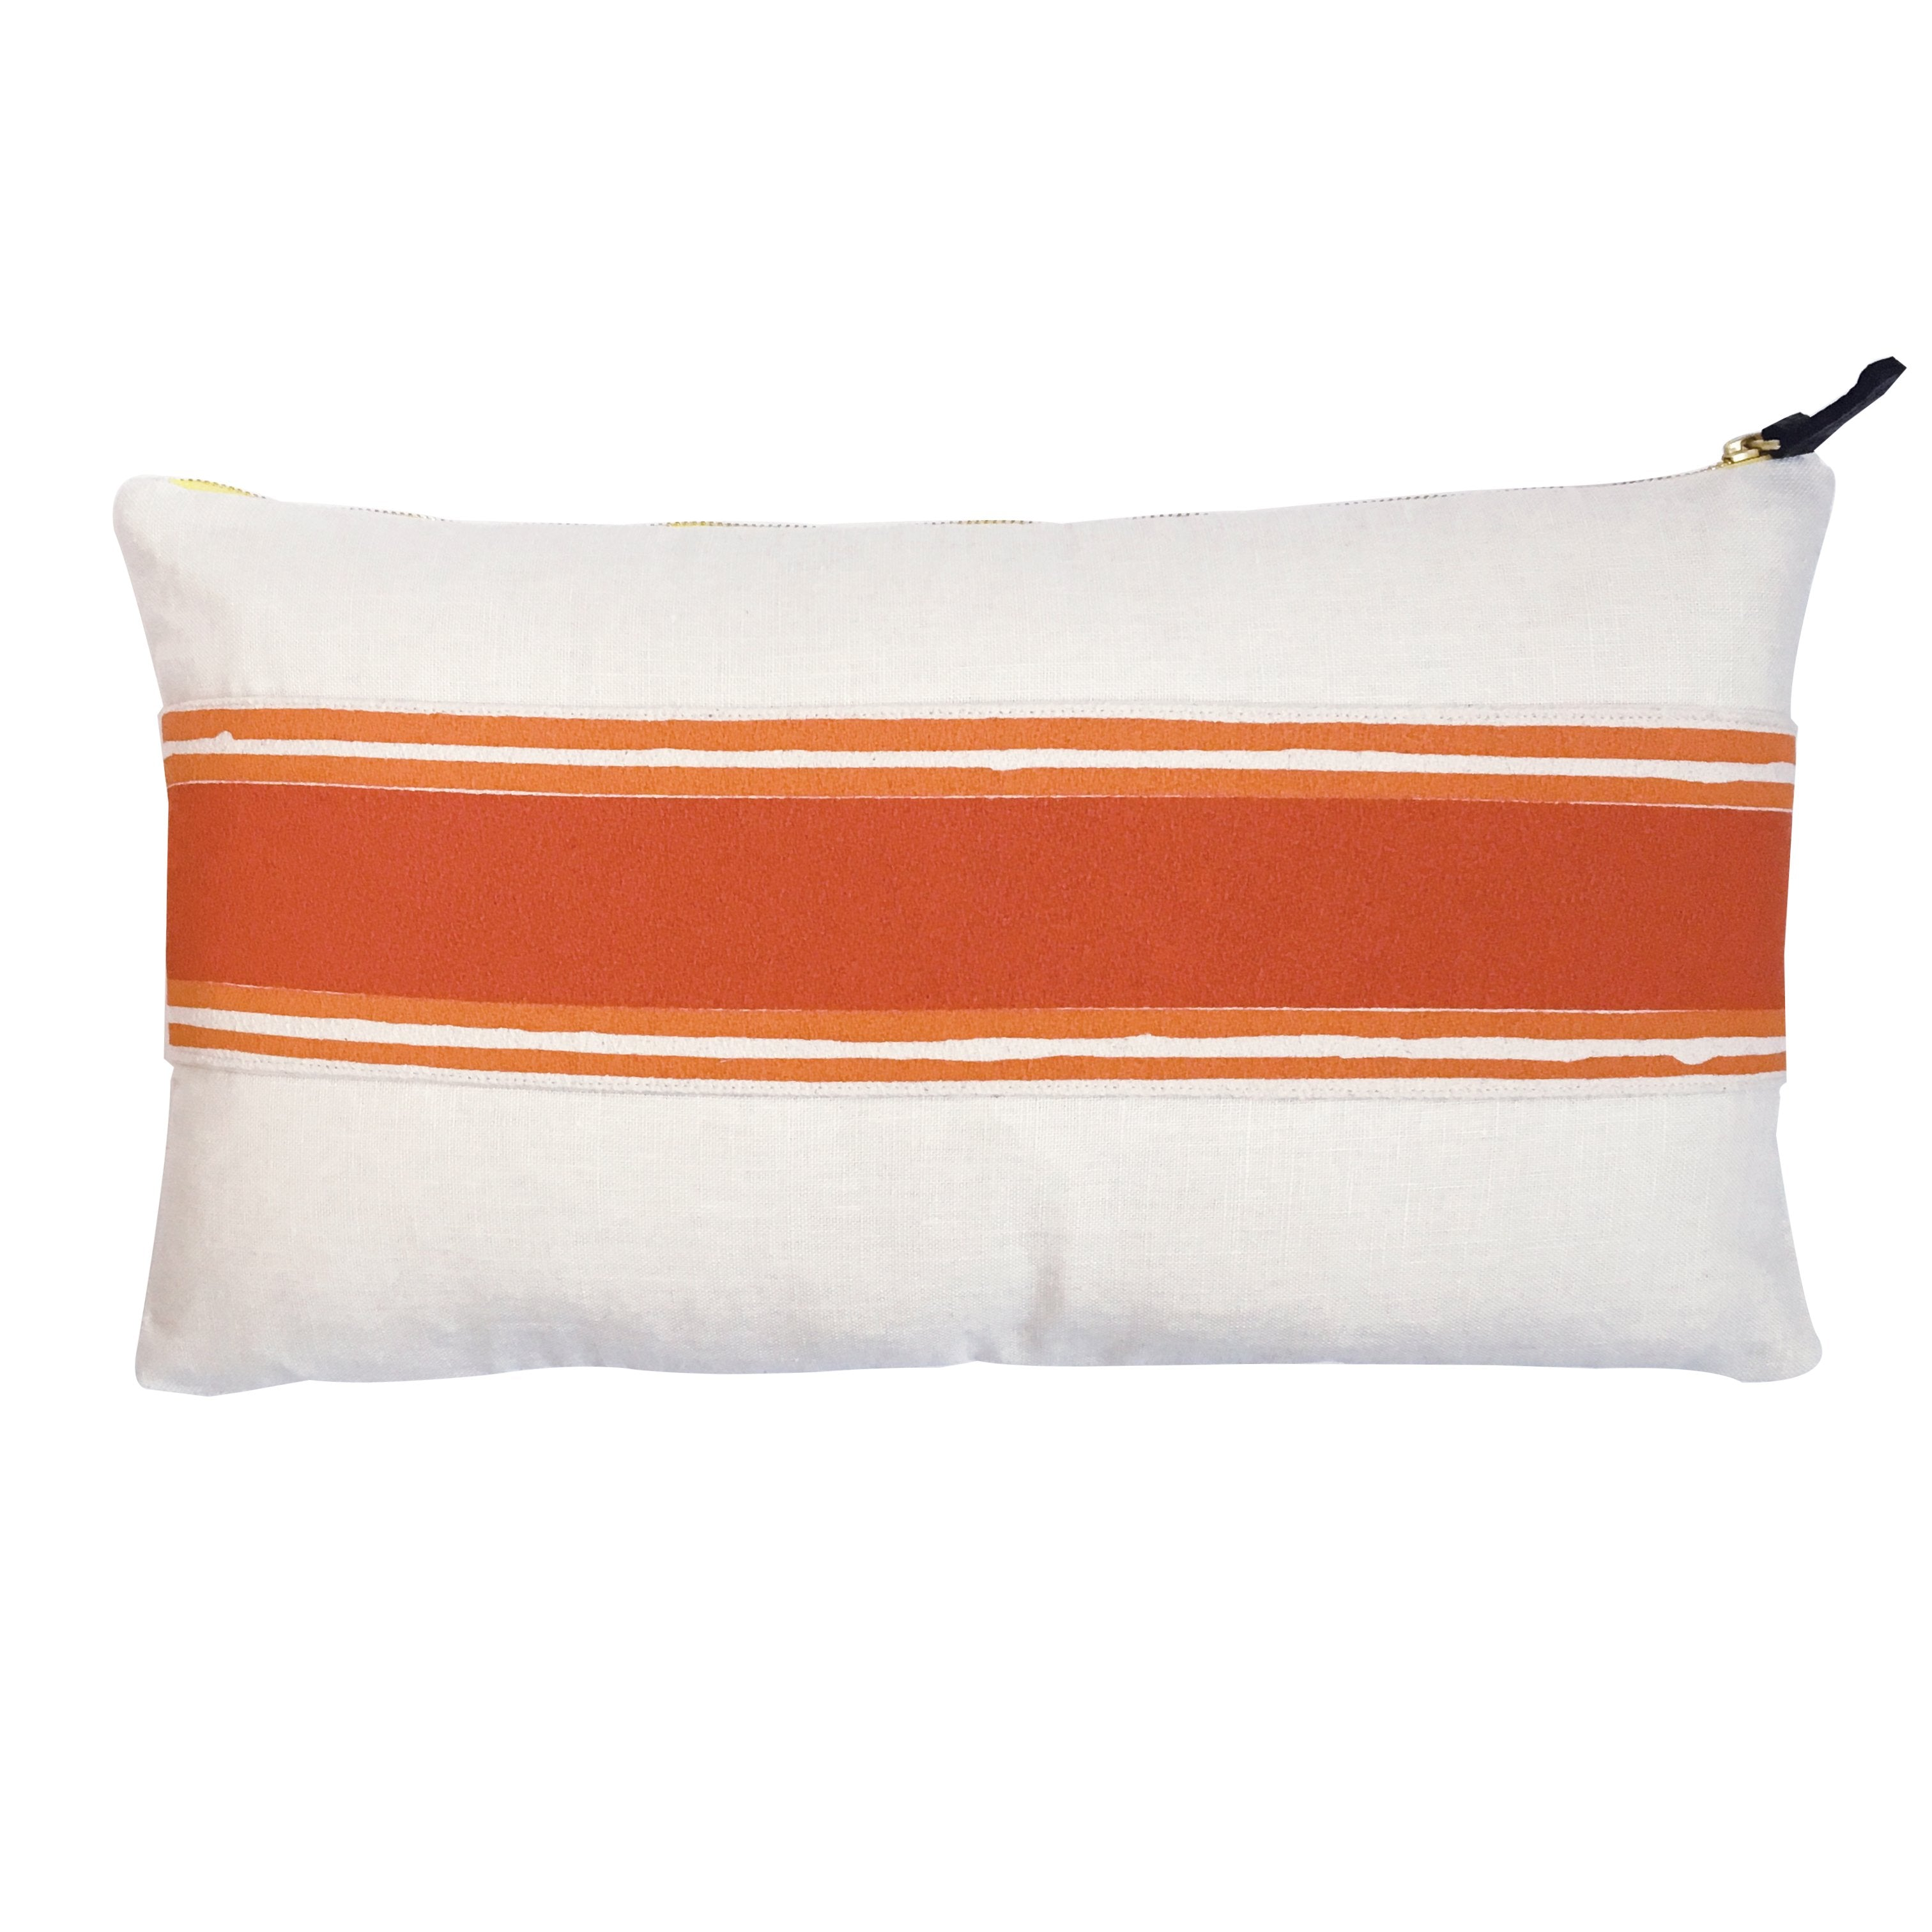 TOMATO + MANGO TWO COLOR BAND ON OYSTER LINEN PILLOW